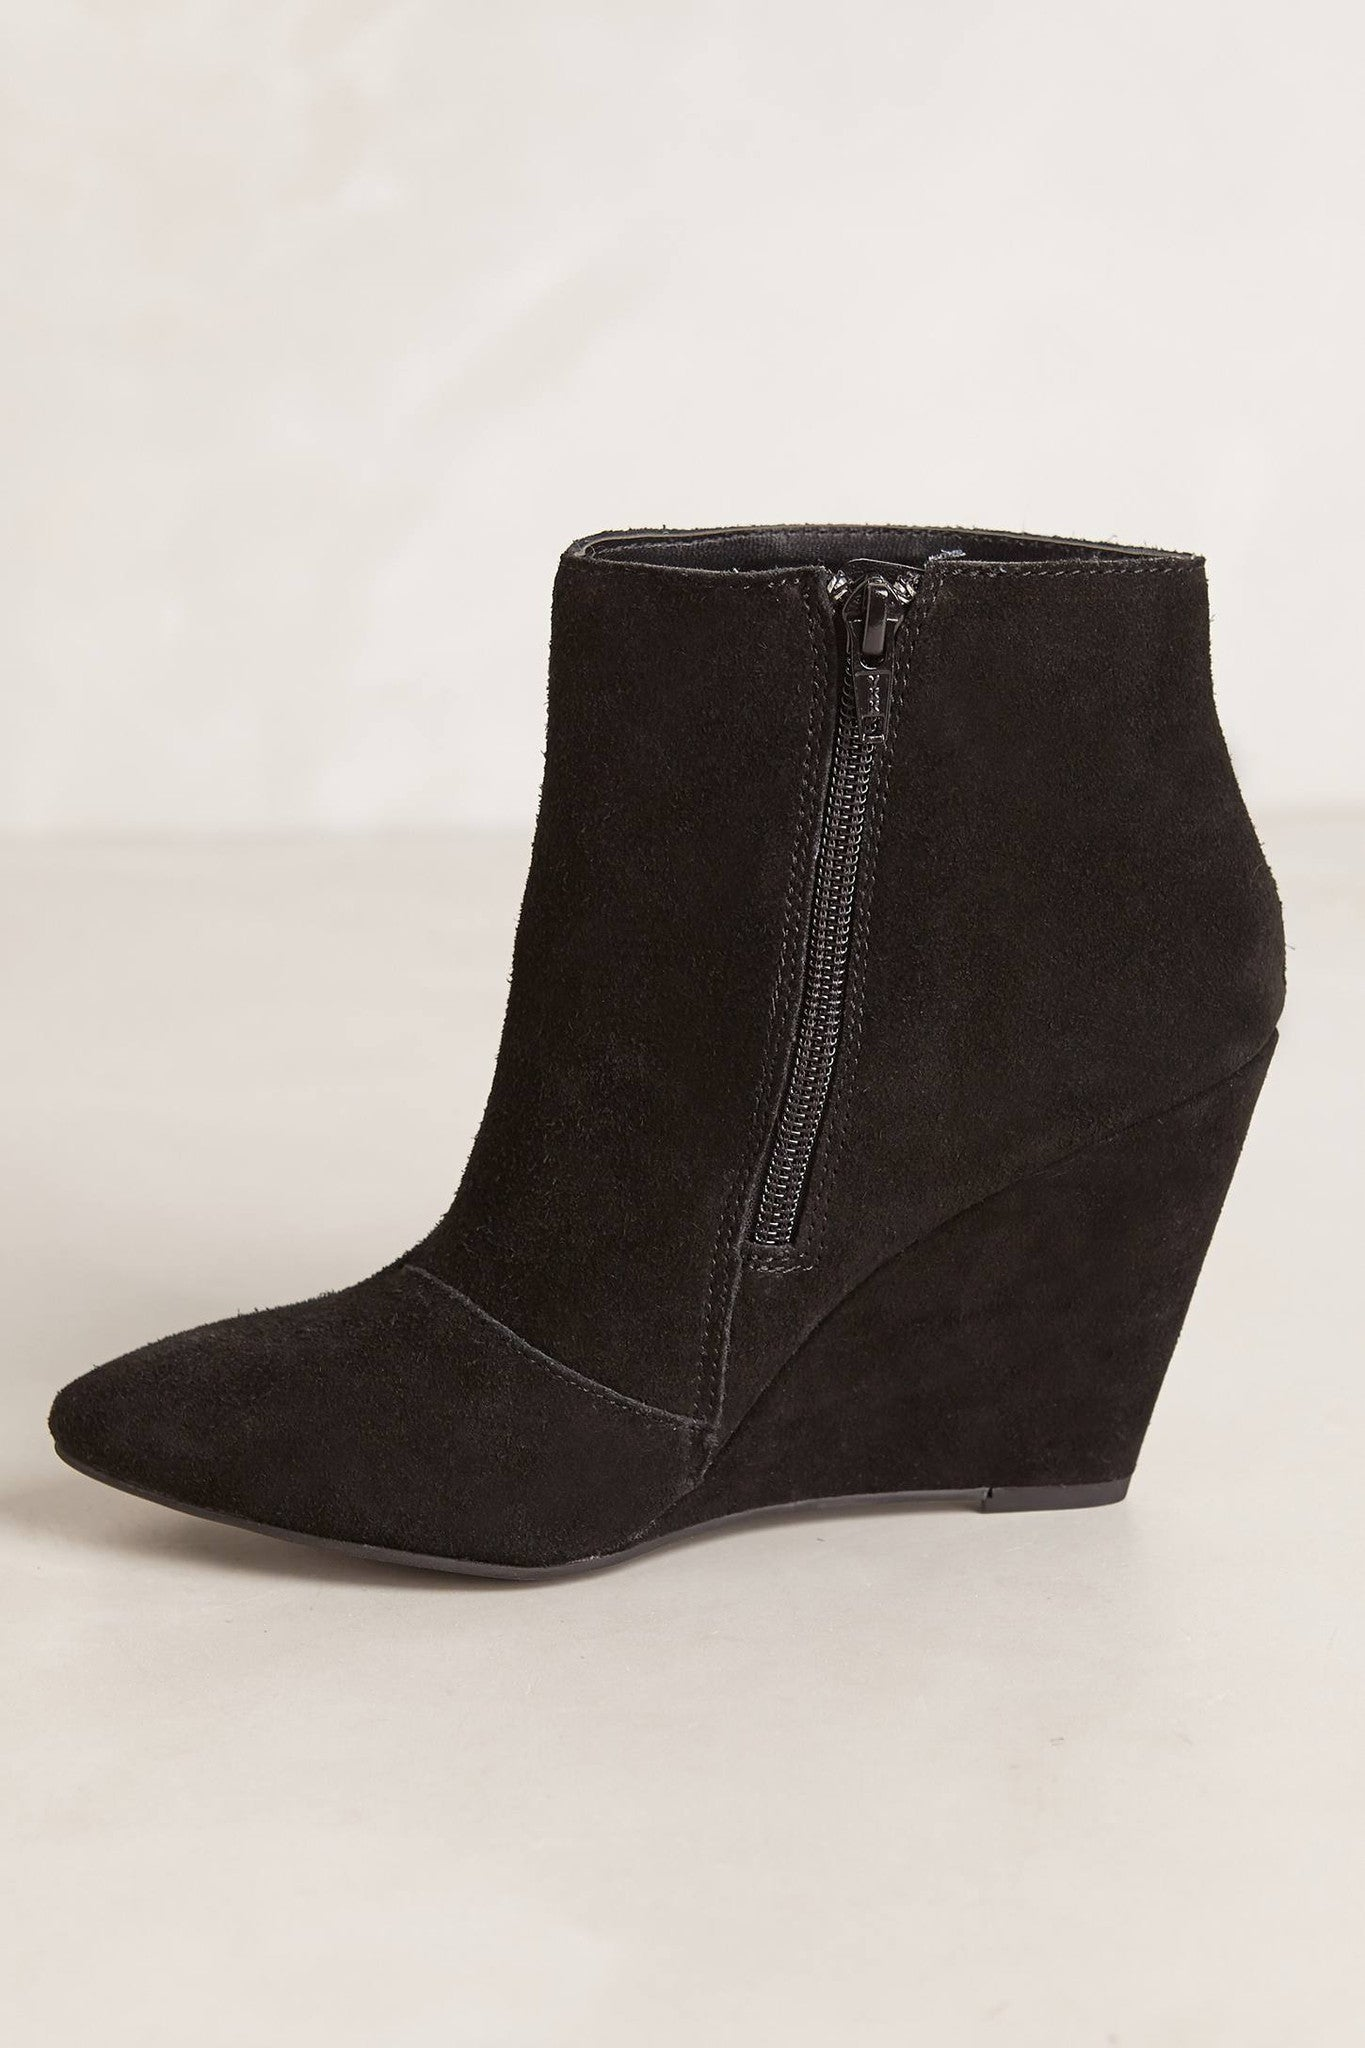 Cary Wedge Booties